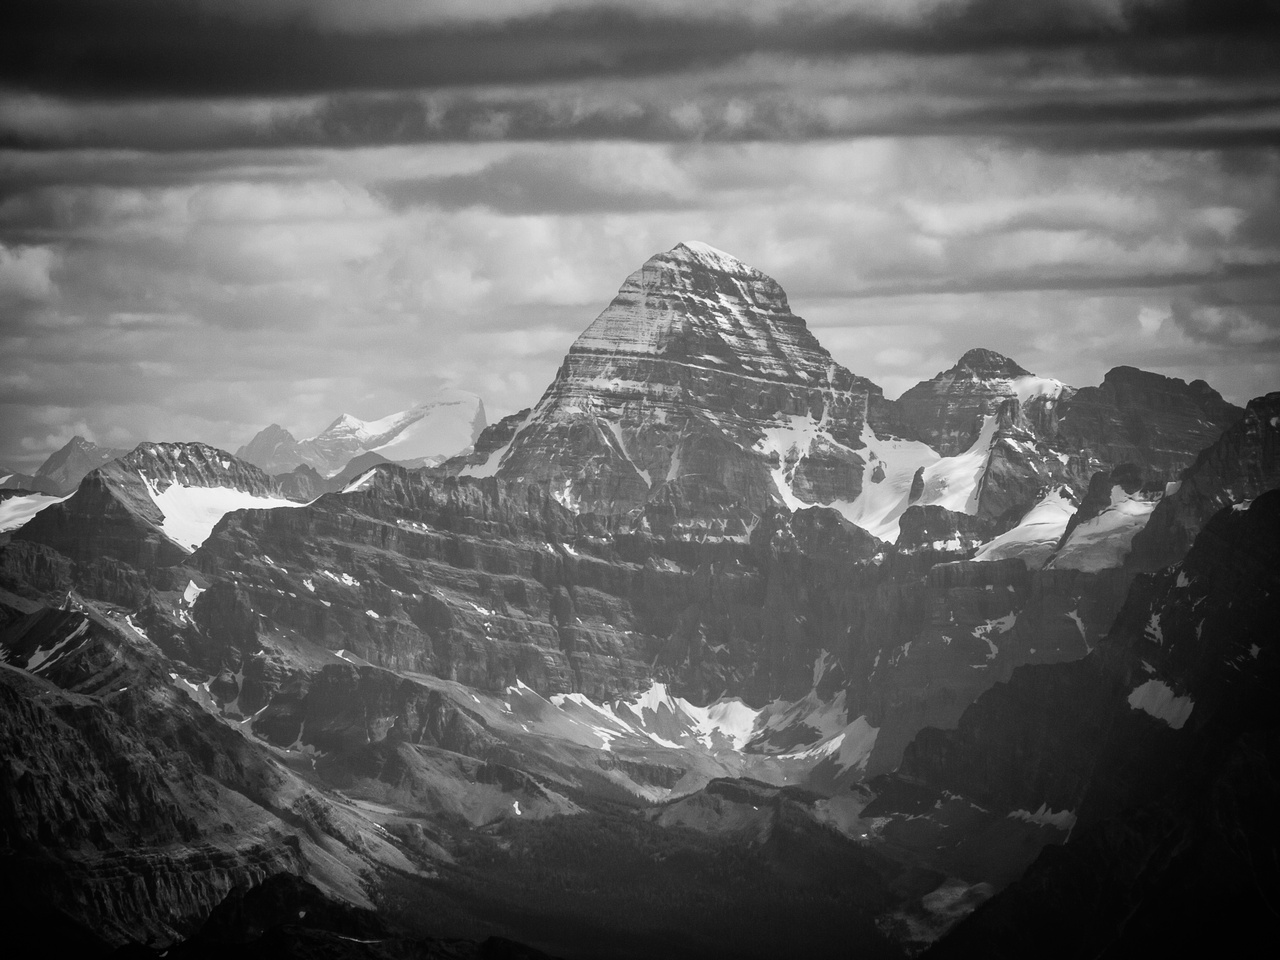 Mighty Mount Assiniboine with Joffre in the far distance at left.